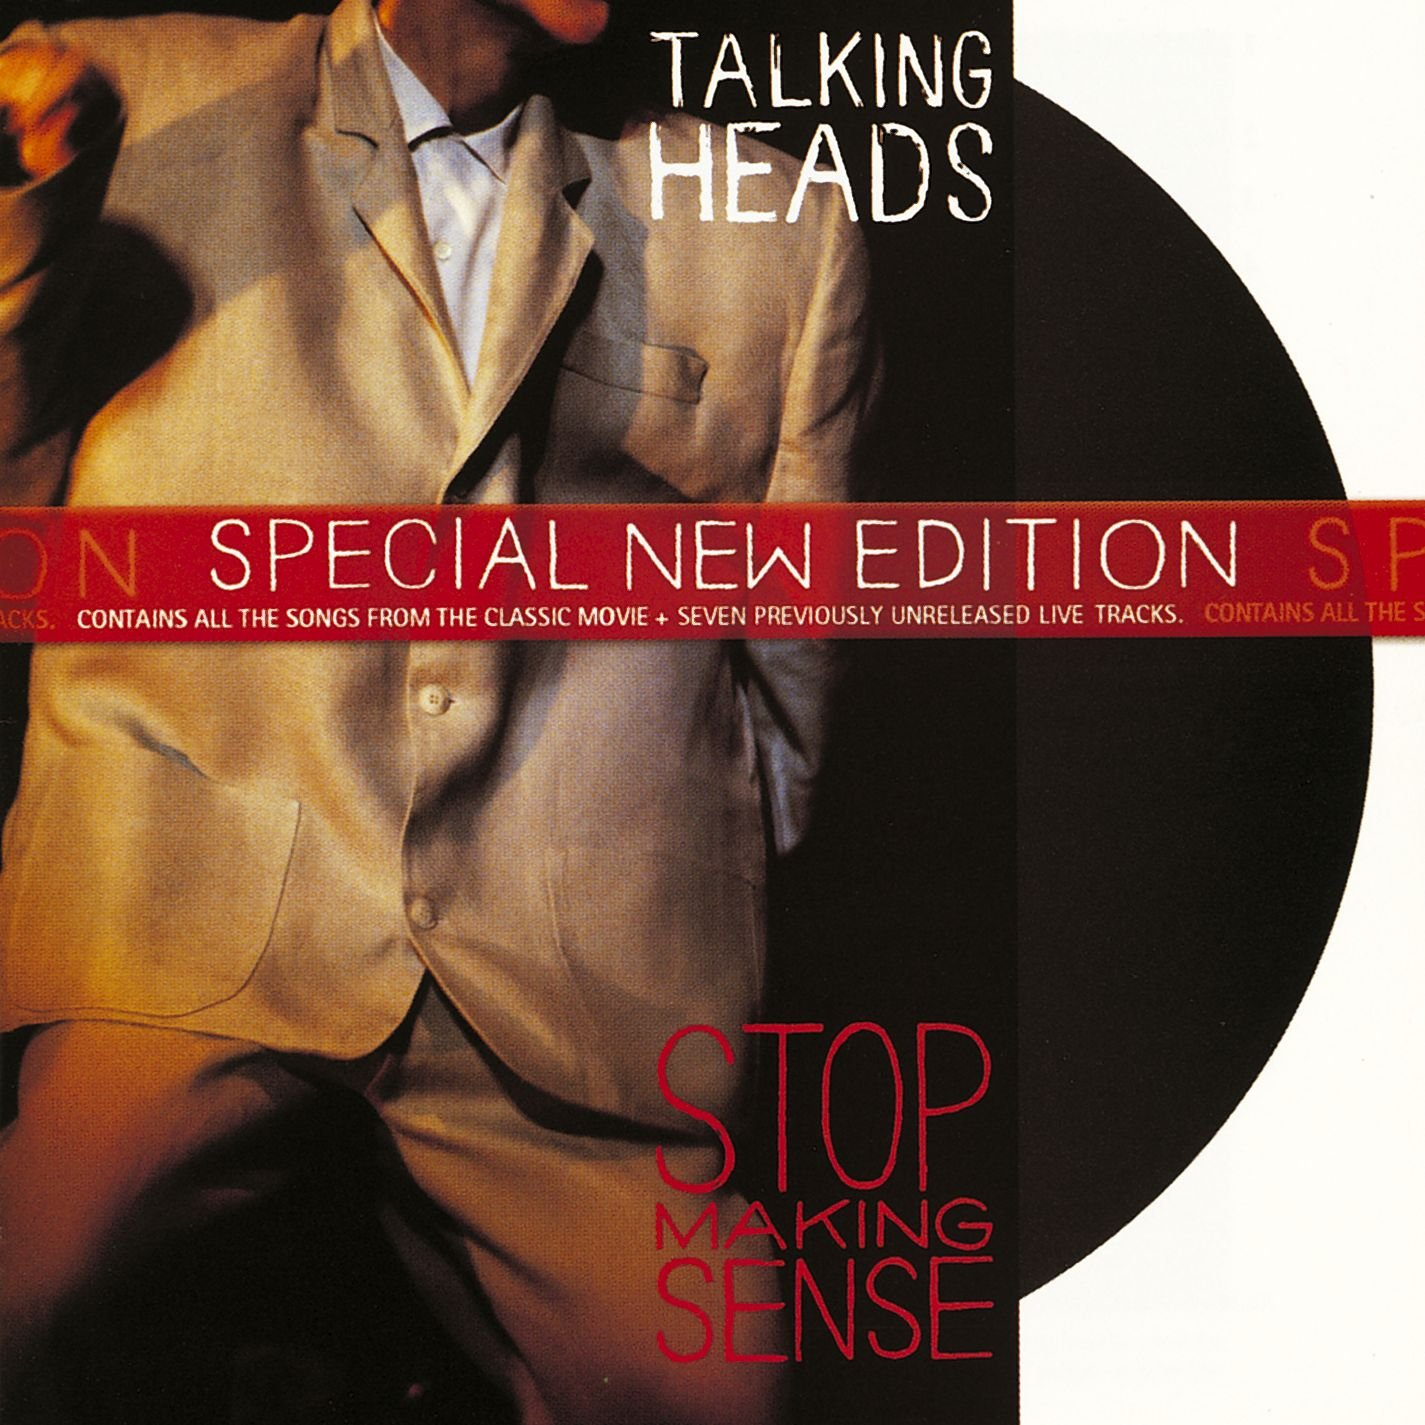 Stop Making Sense: Special New Edition (1984 Film) by TALKING HEADS